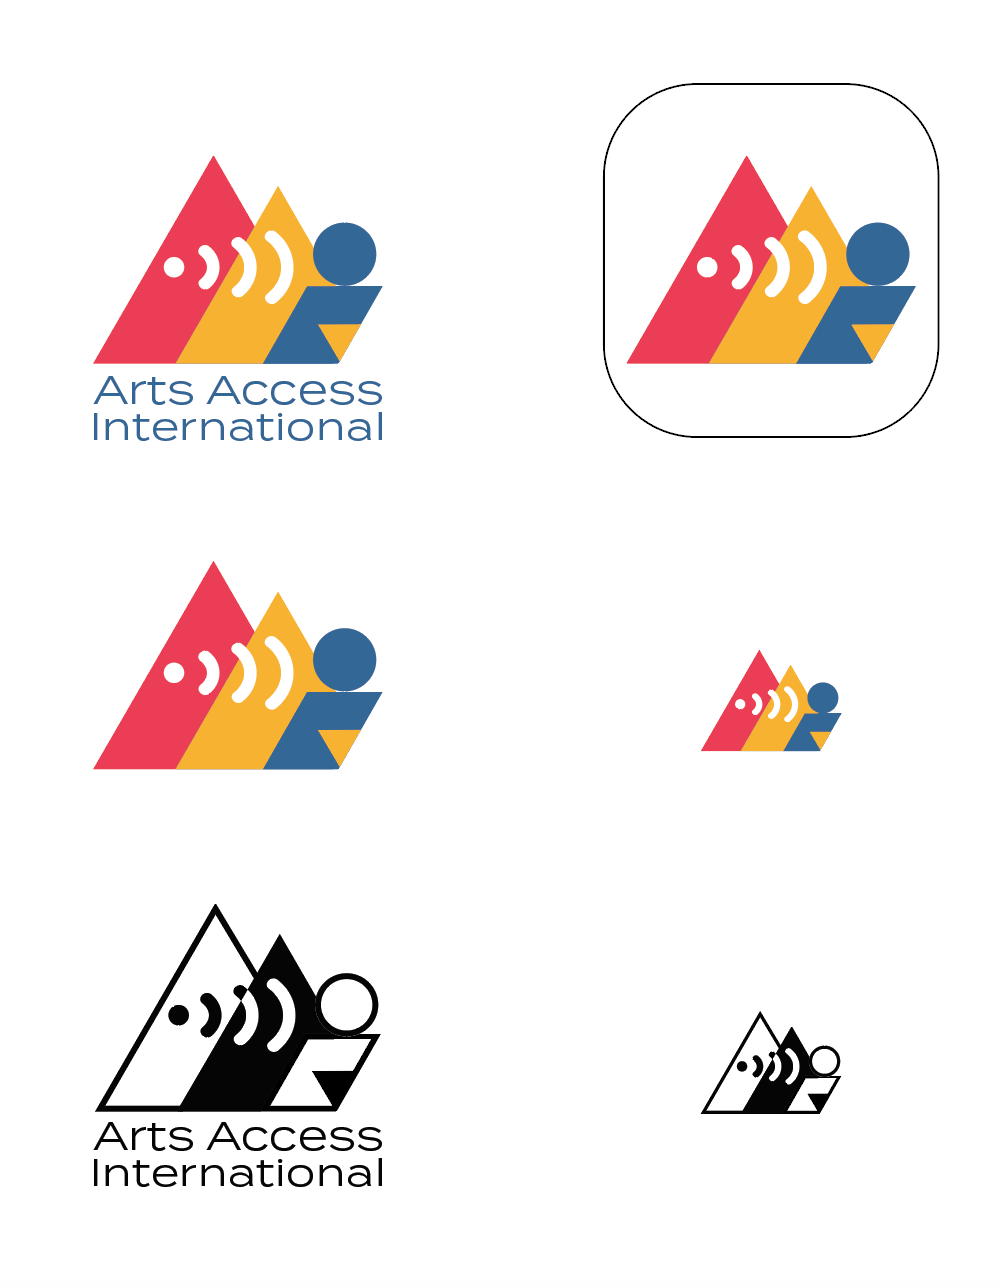 Arts Access International: I created a logo for a company that provides software for live narrative descriptions of live events for the visually impaired.